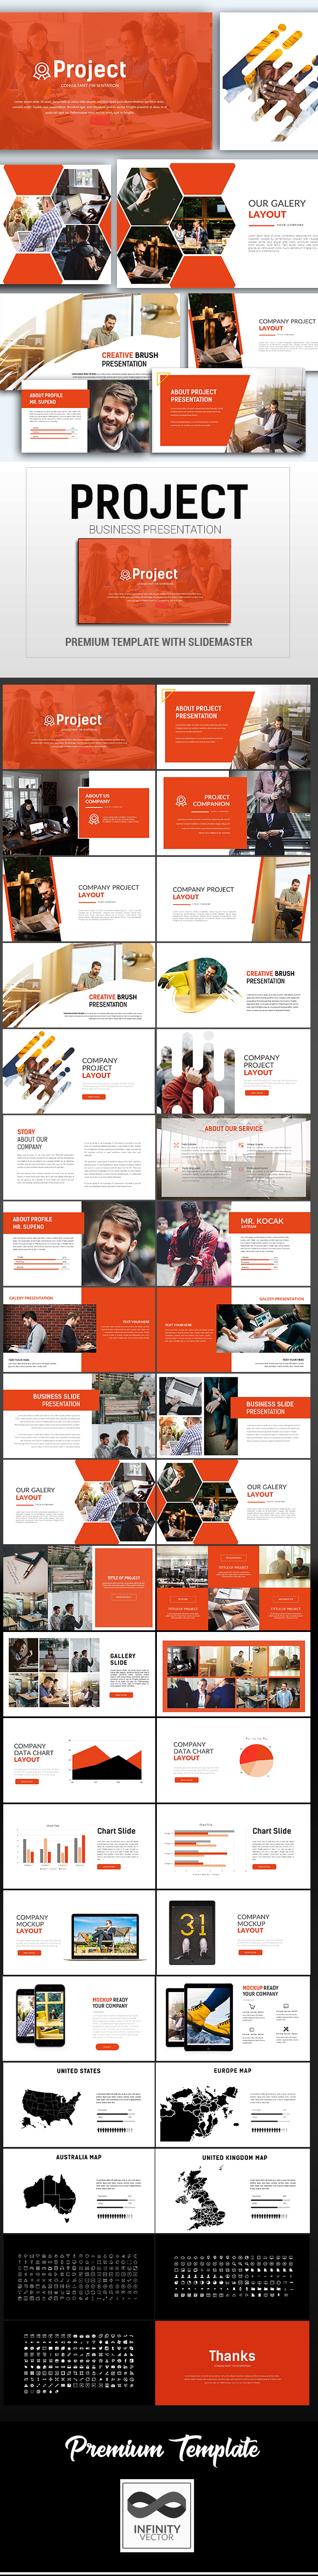 GraphicRiver Project Consultant Presentation Google Slide 21141997